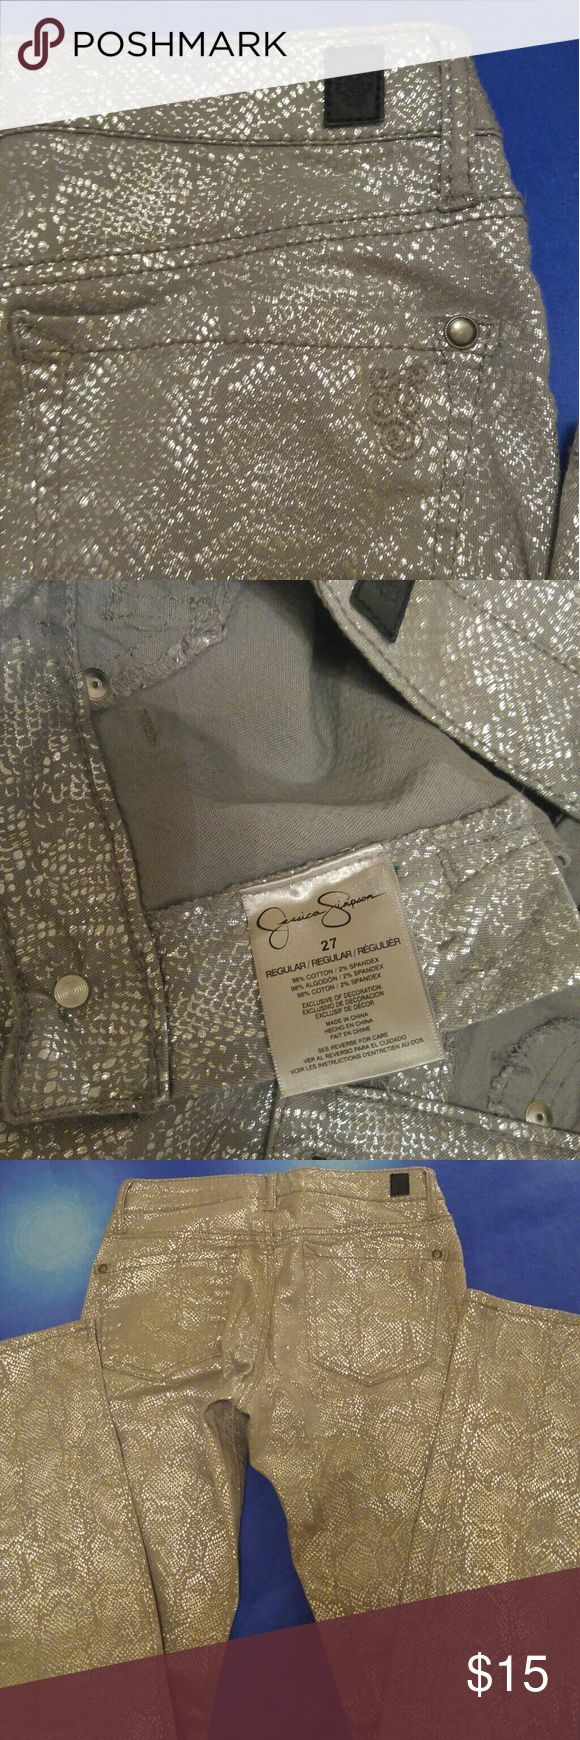 Jessica Simpson Kiss Me Skinny Jeans Figure- flattering Jessica Simpson Kiss me skinny jeans gray collor finished with chick silver metallic snakeskin print. Skinny fit through hips and thighs skinny legs. Used, like new in perfect condition. Size 27 Jessica Simpson Jeans Skinny